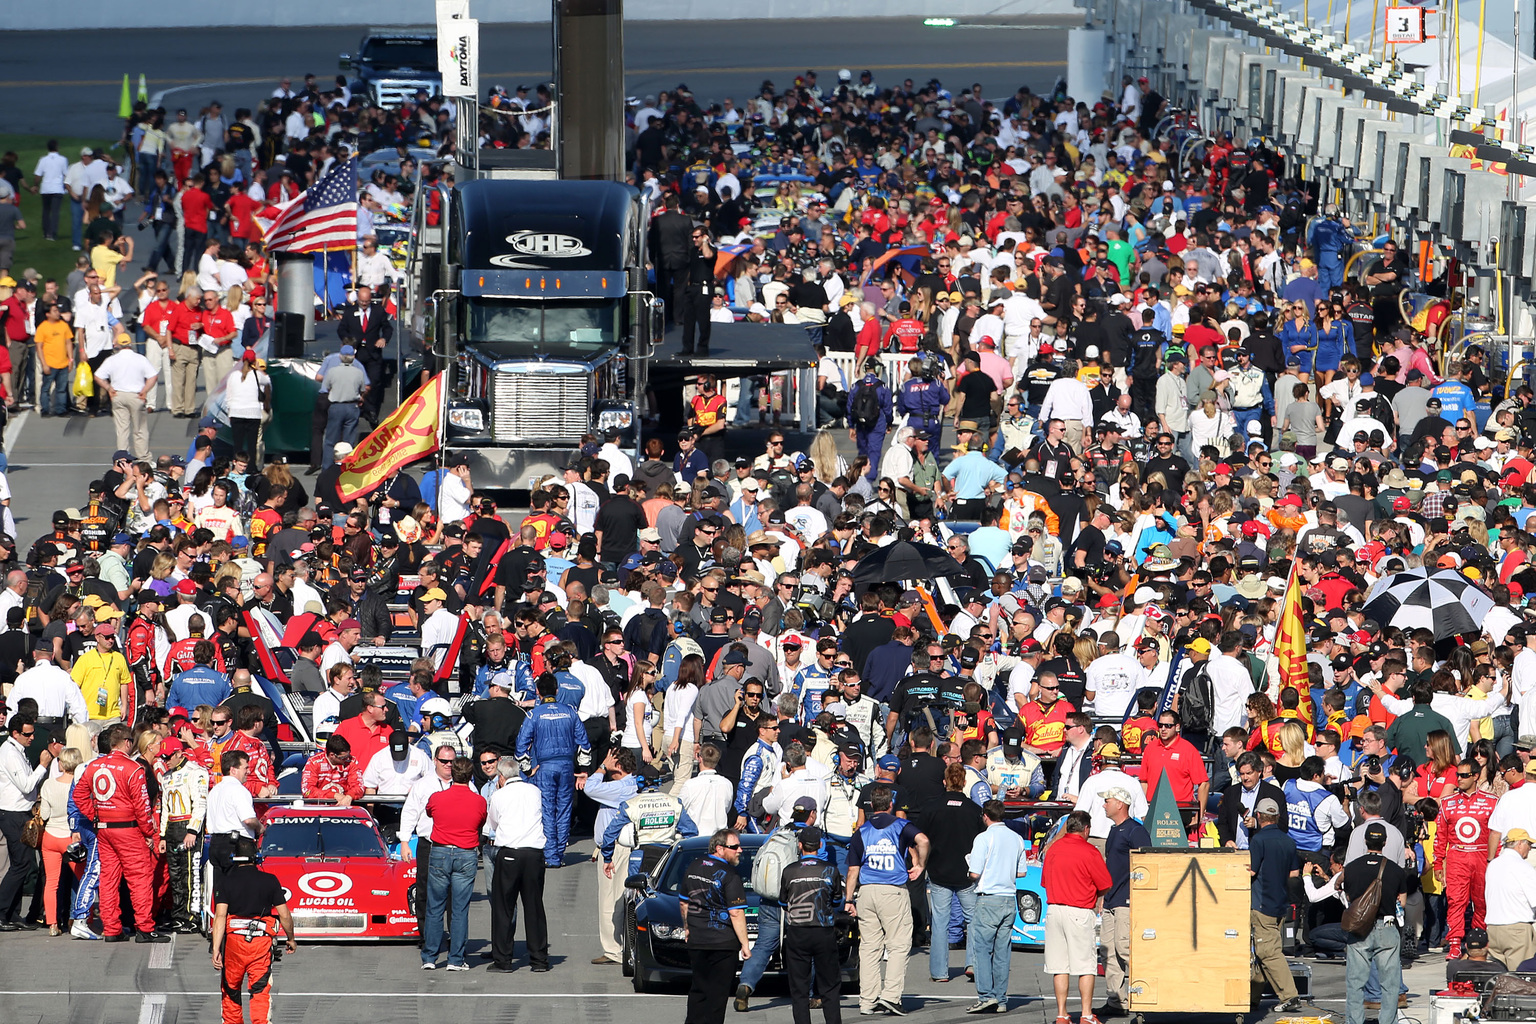 2013 Rolex 24 at Daytona